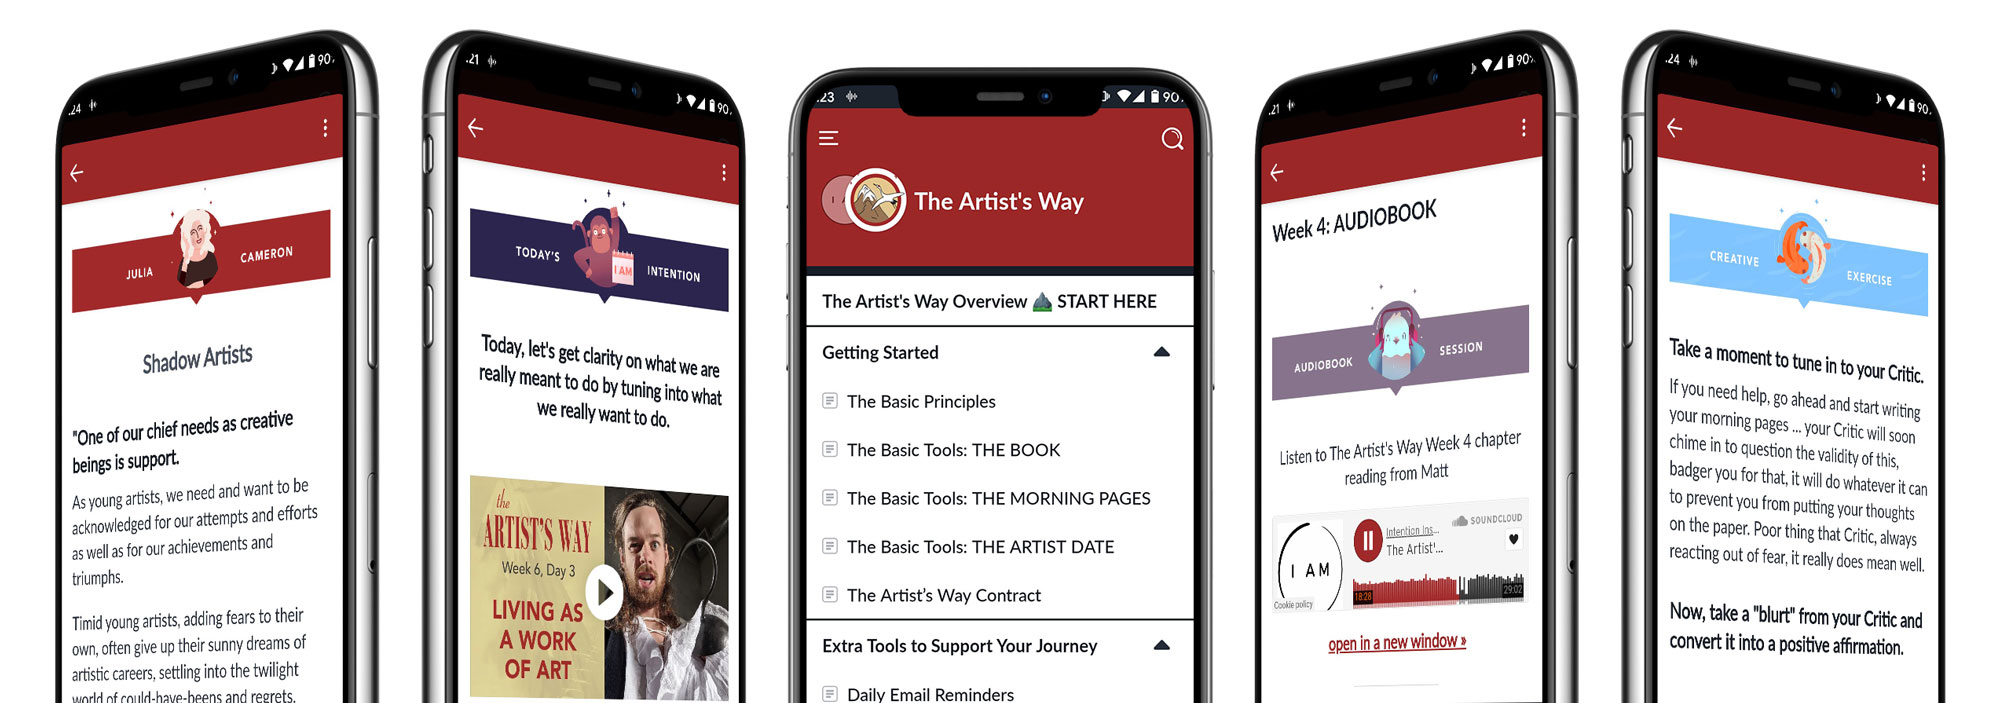 The Artist's Way Online Course Mobile App